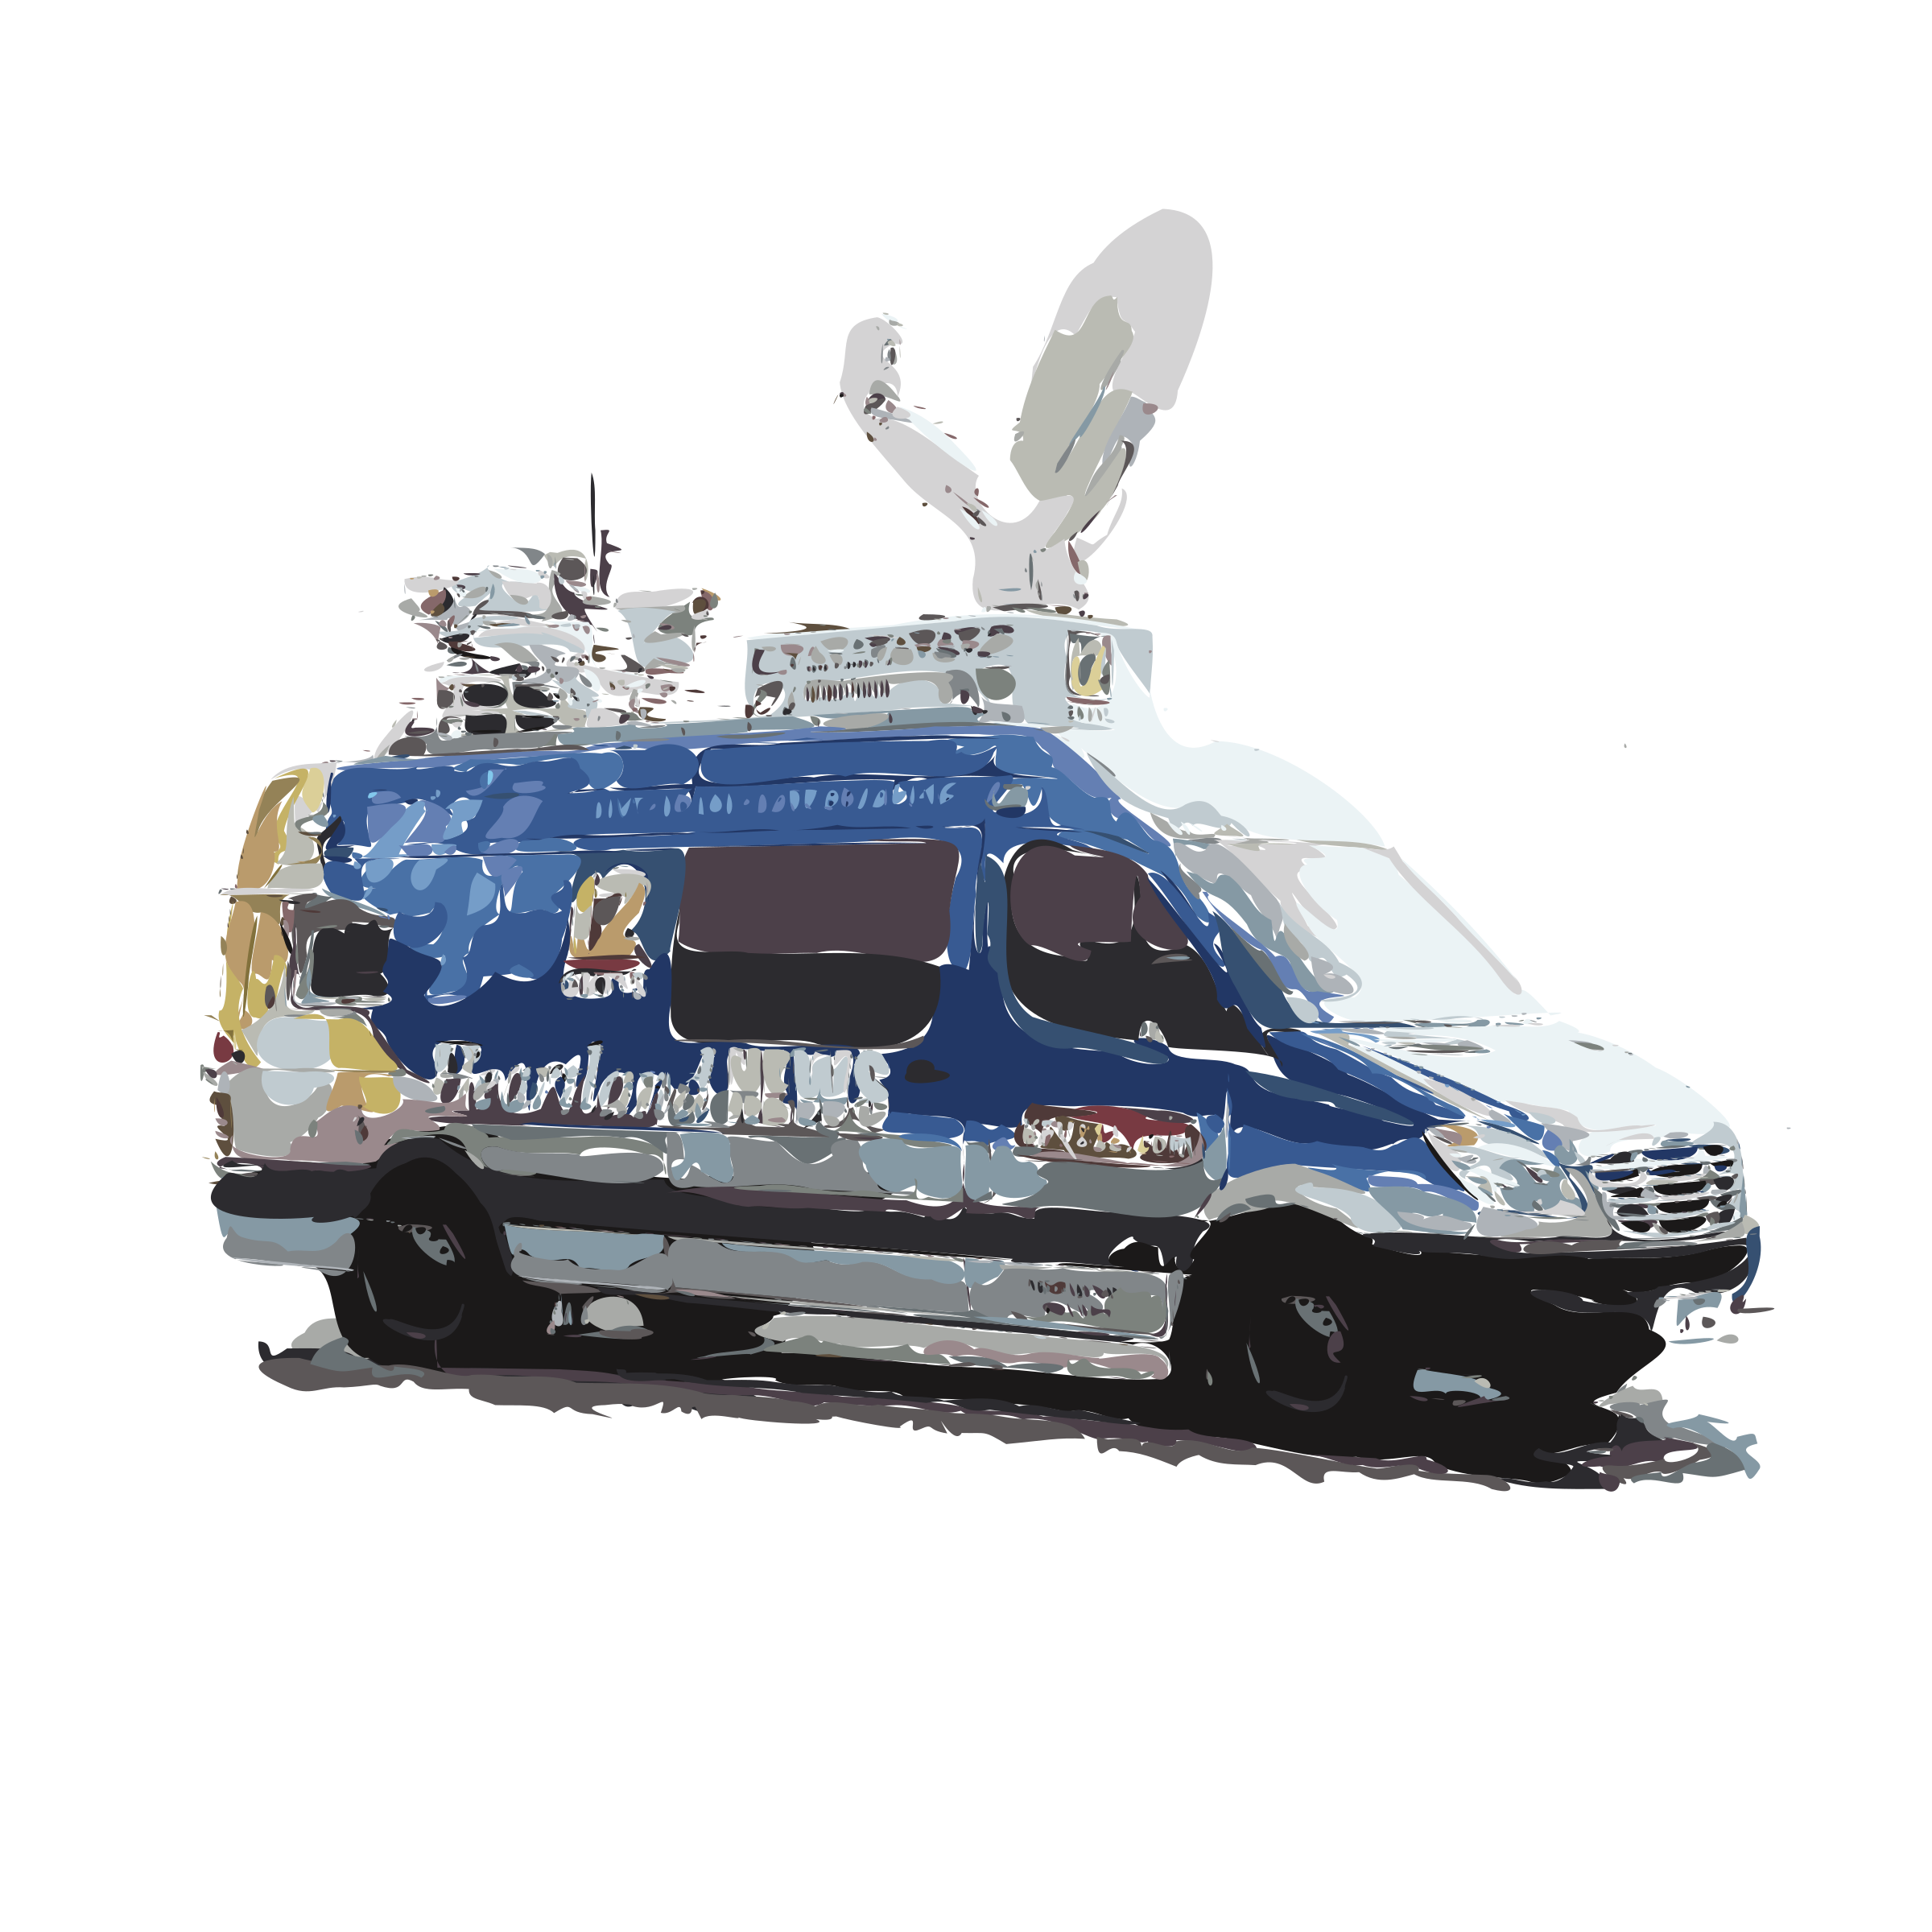 News van png. Isolated icons free and